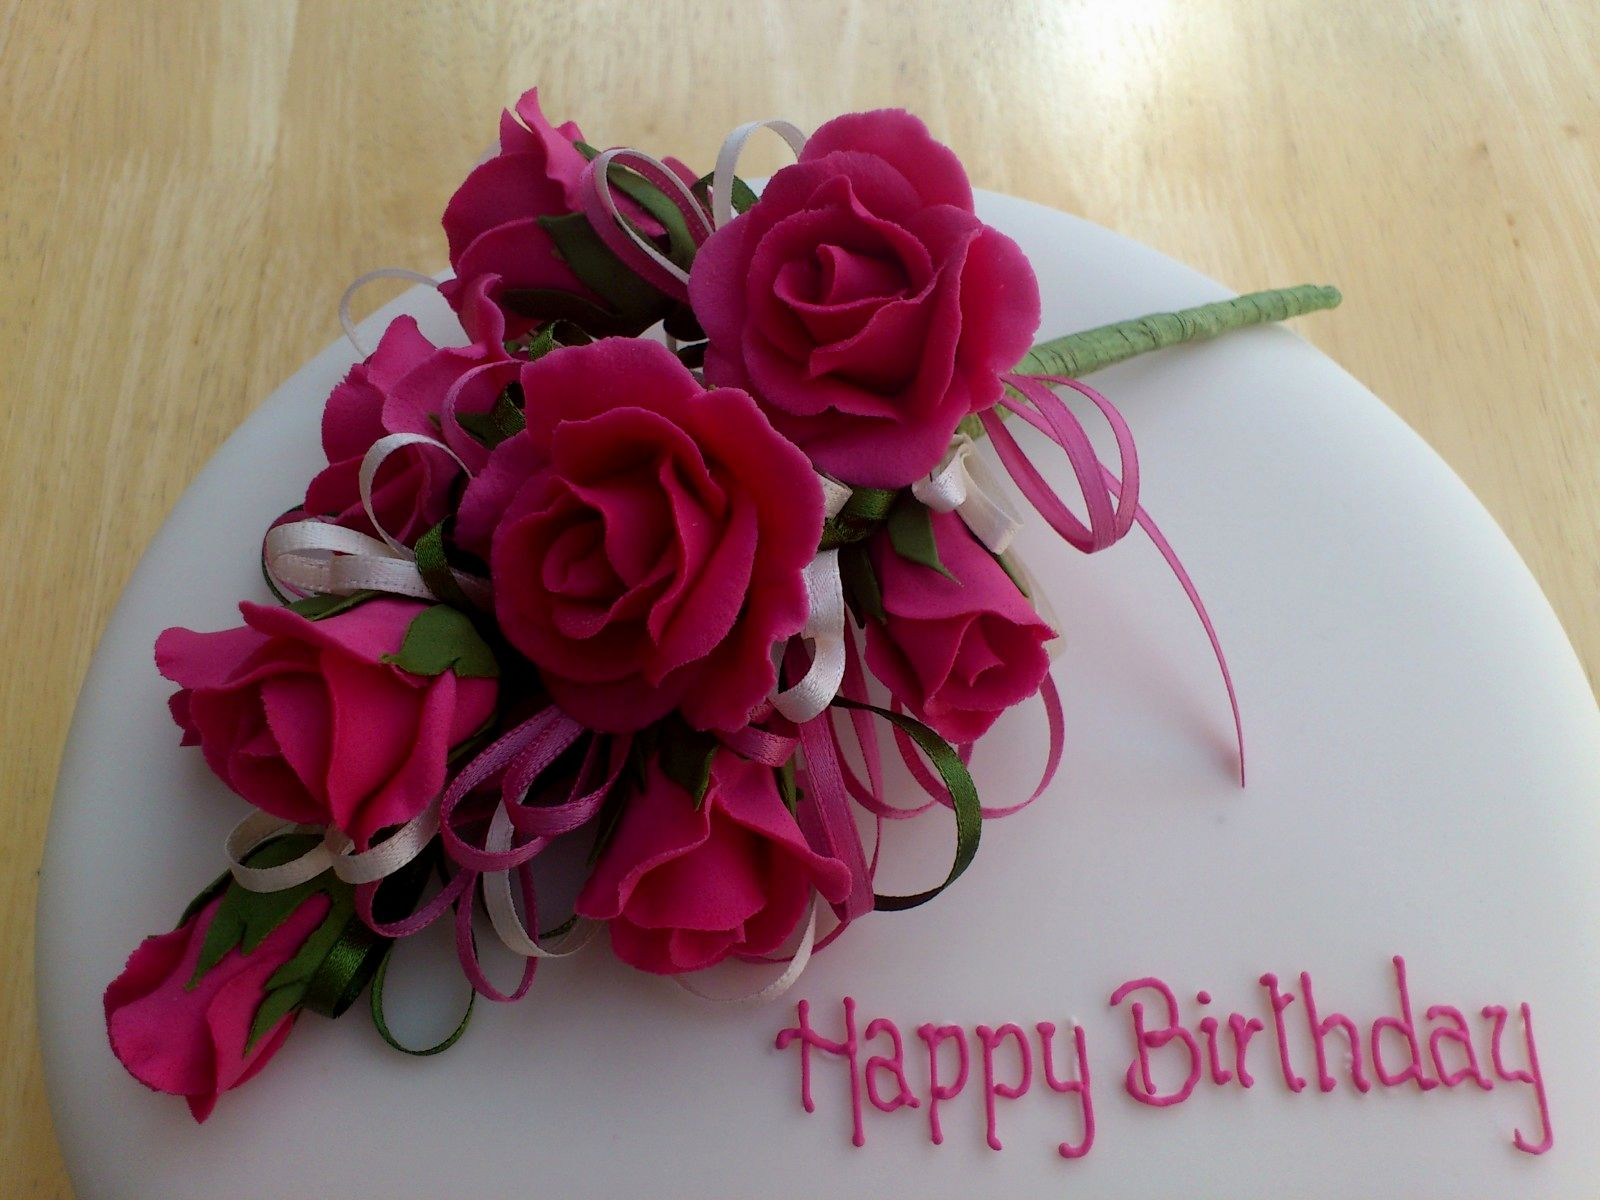 10 Birthday Cakes With Roses On Top Photo Birthday Cake With Roses